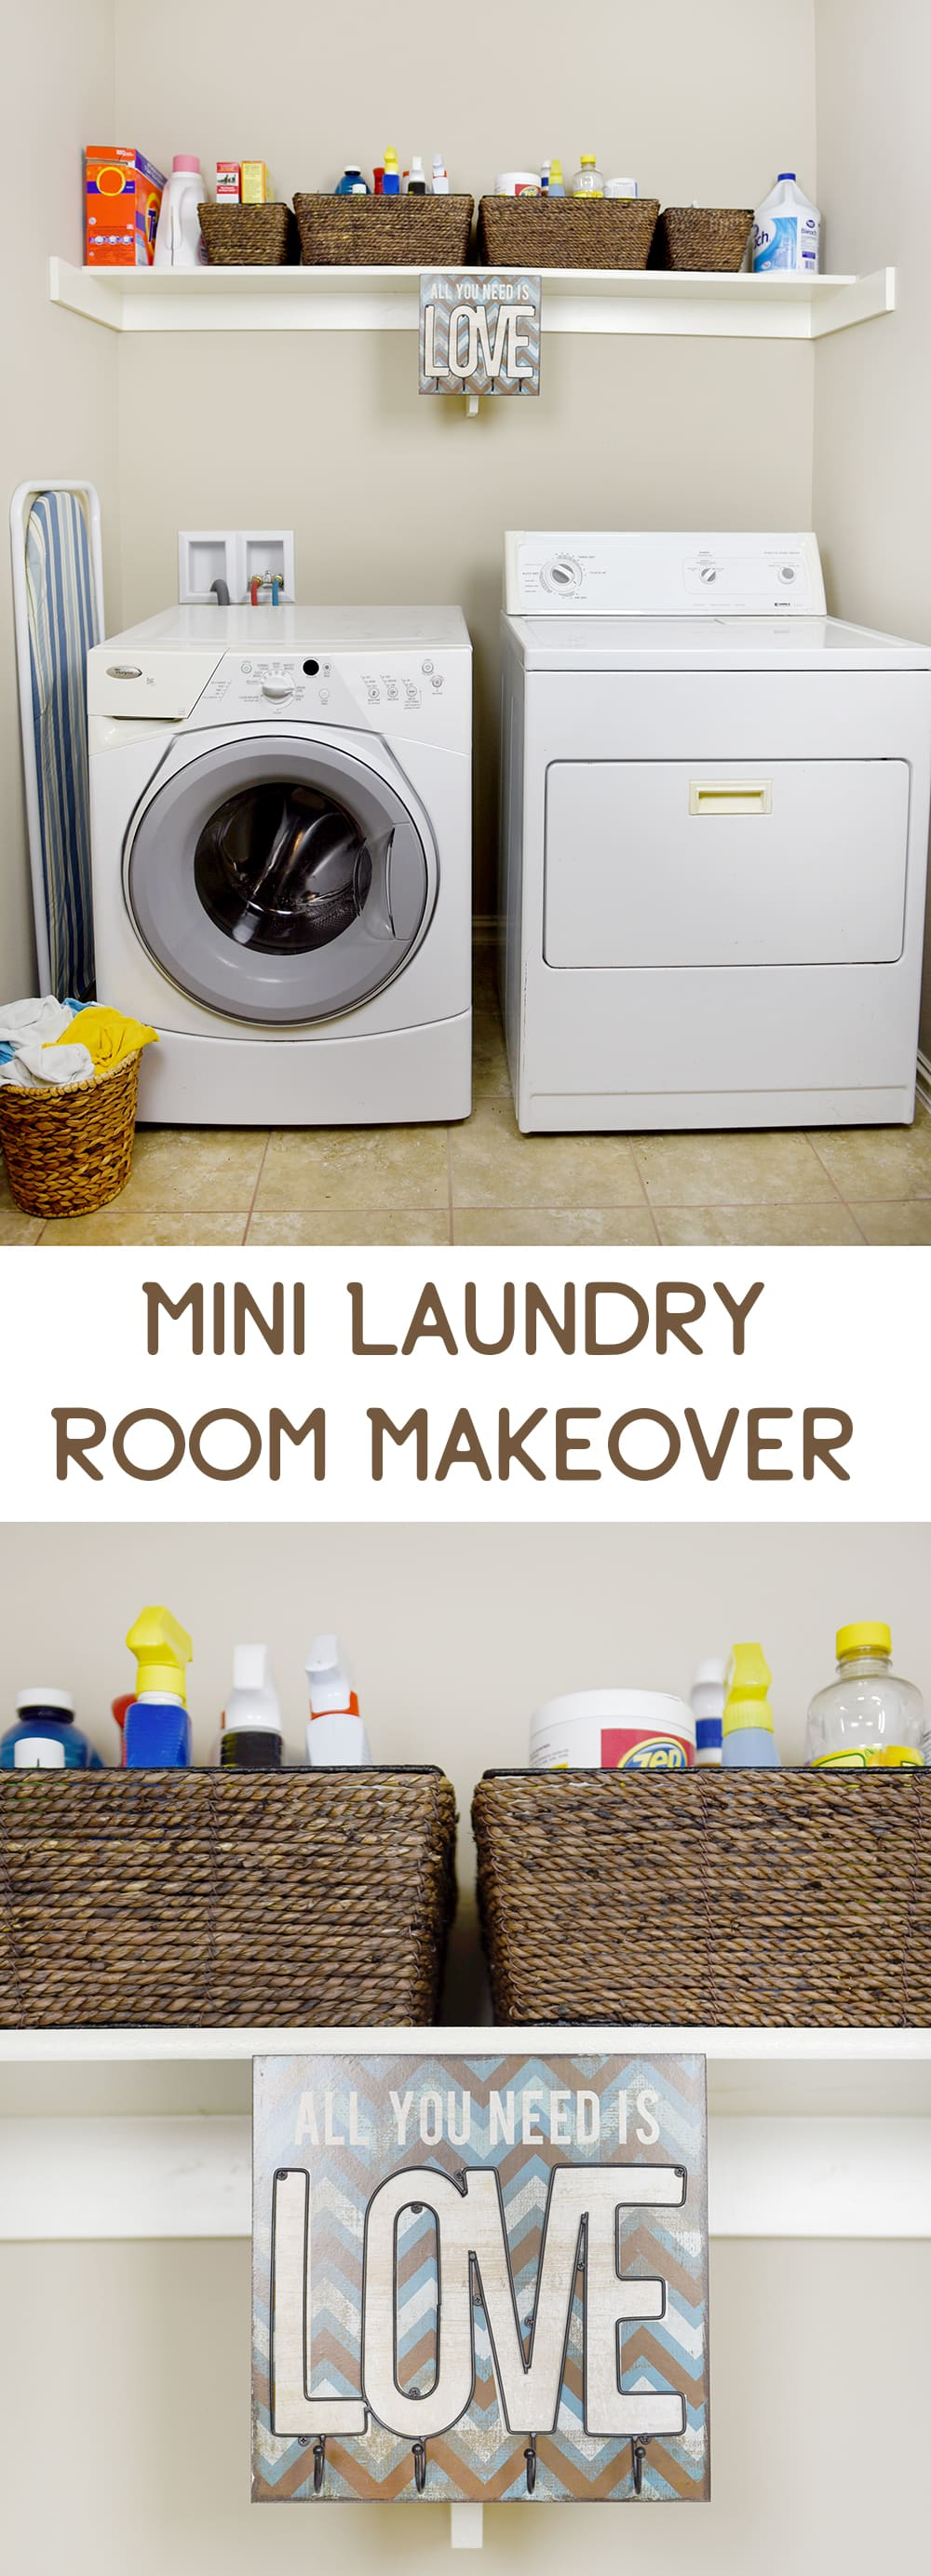 Mini Laundry Room Makeover - Sprinkle Some Fun